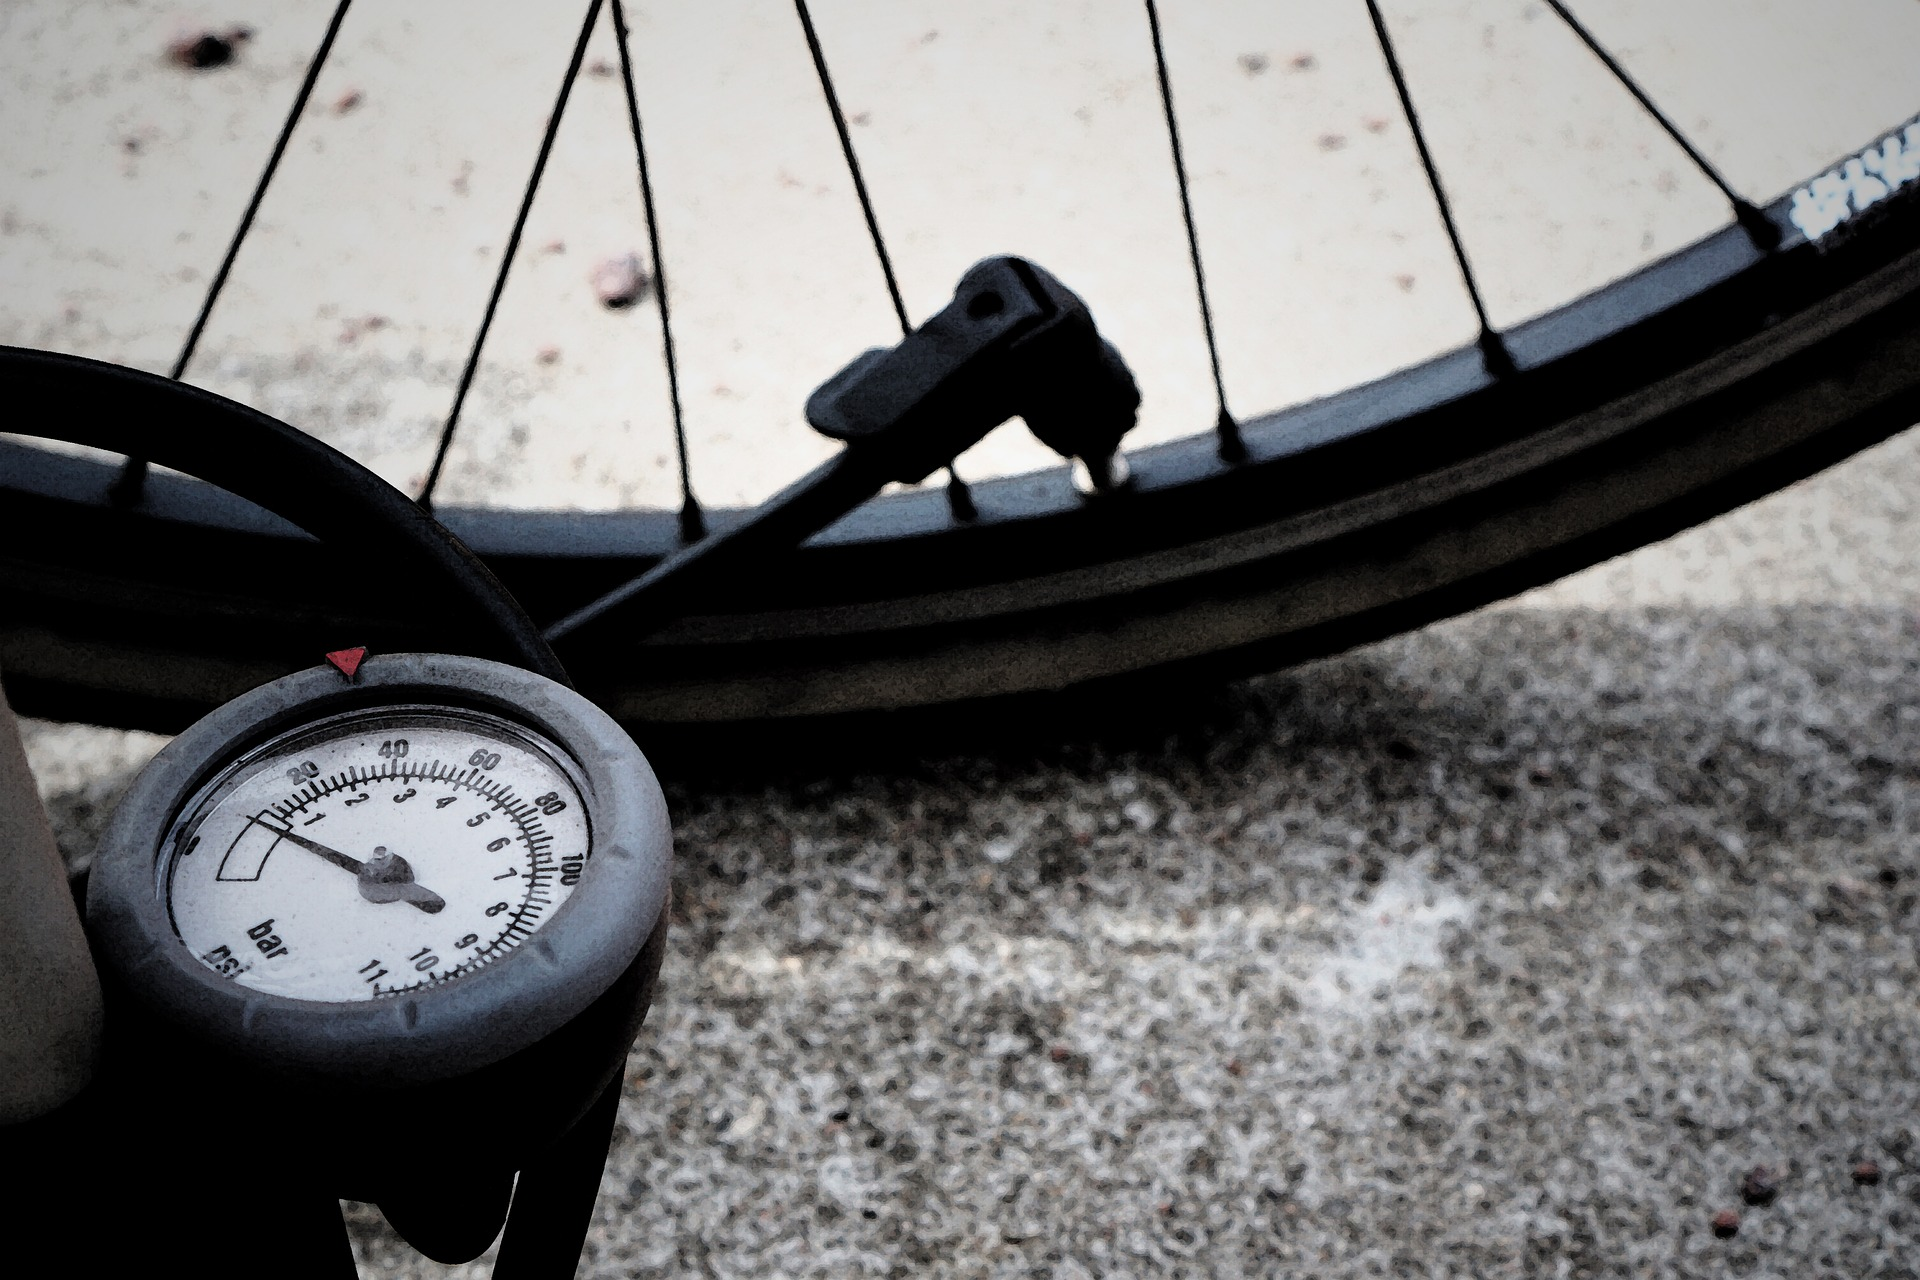 How To Fill Presta Valve For Your Mountain Bike 7 - tire pressure